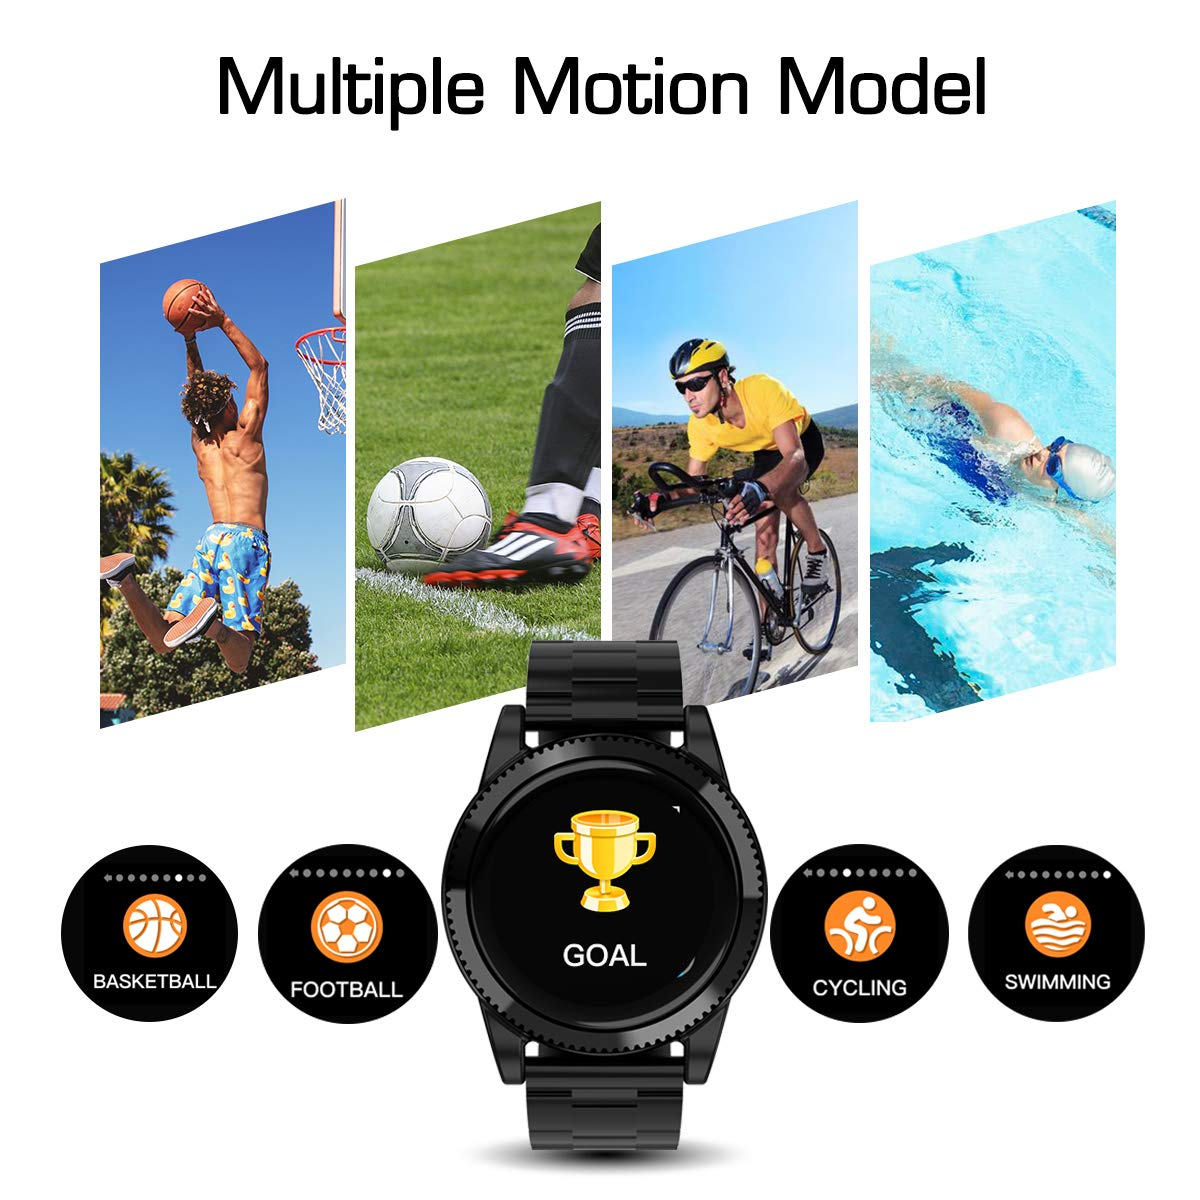 GOKOO Smart Watch for Men, Sports Smartwatch Fitness Tracker with Pedometer Notifications Music Control Blood Pressure Heart Rate Monitor Camera Color Touch Screen for Android iOS (Black) by GOKOO (Image #2)